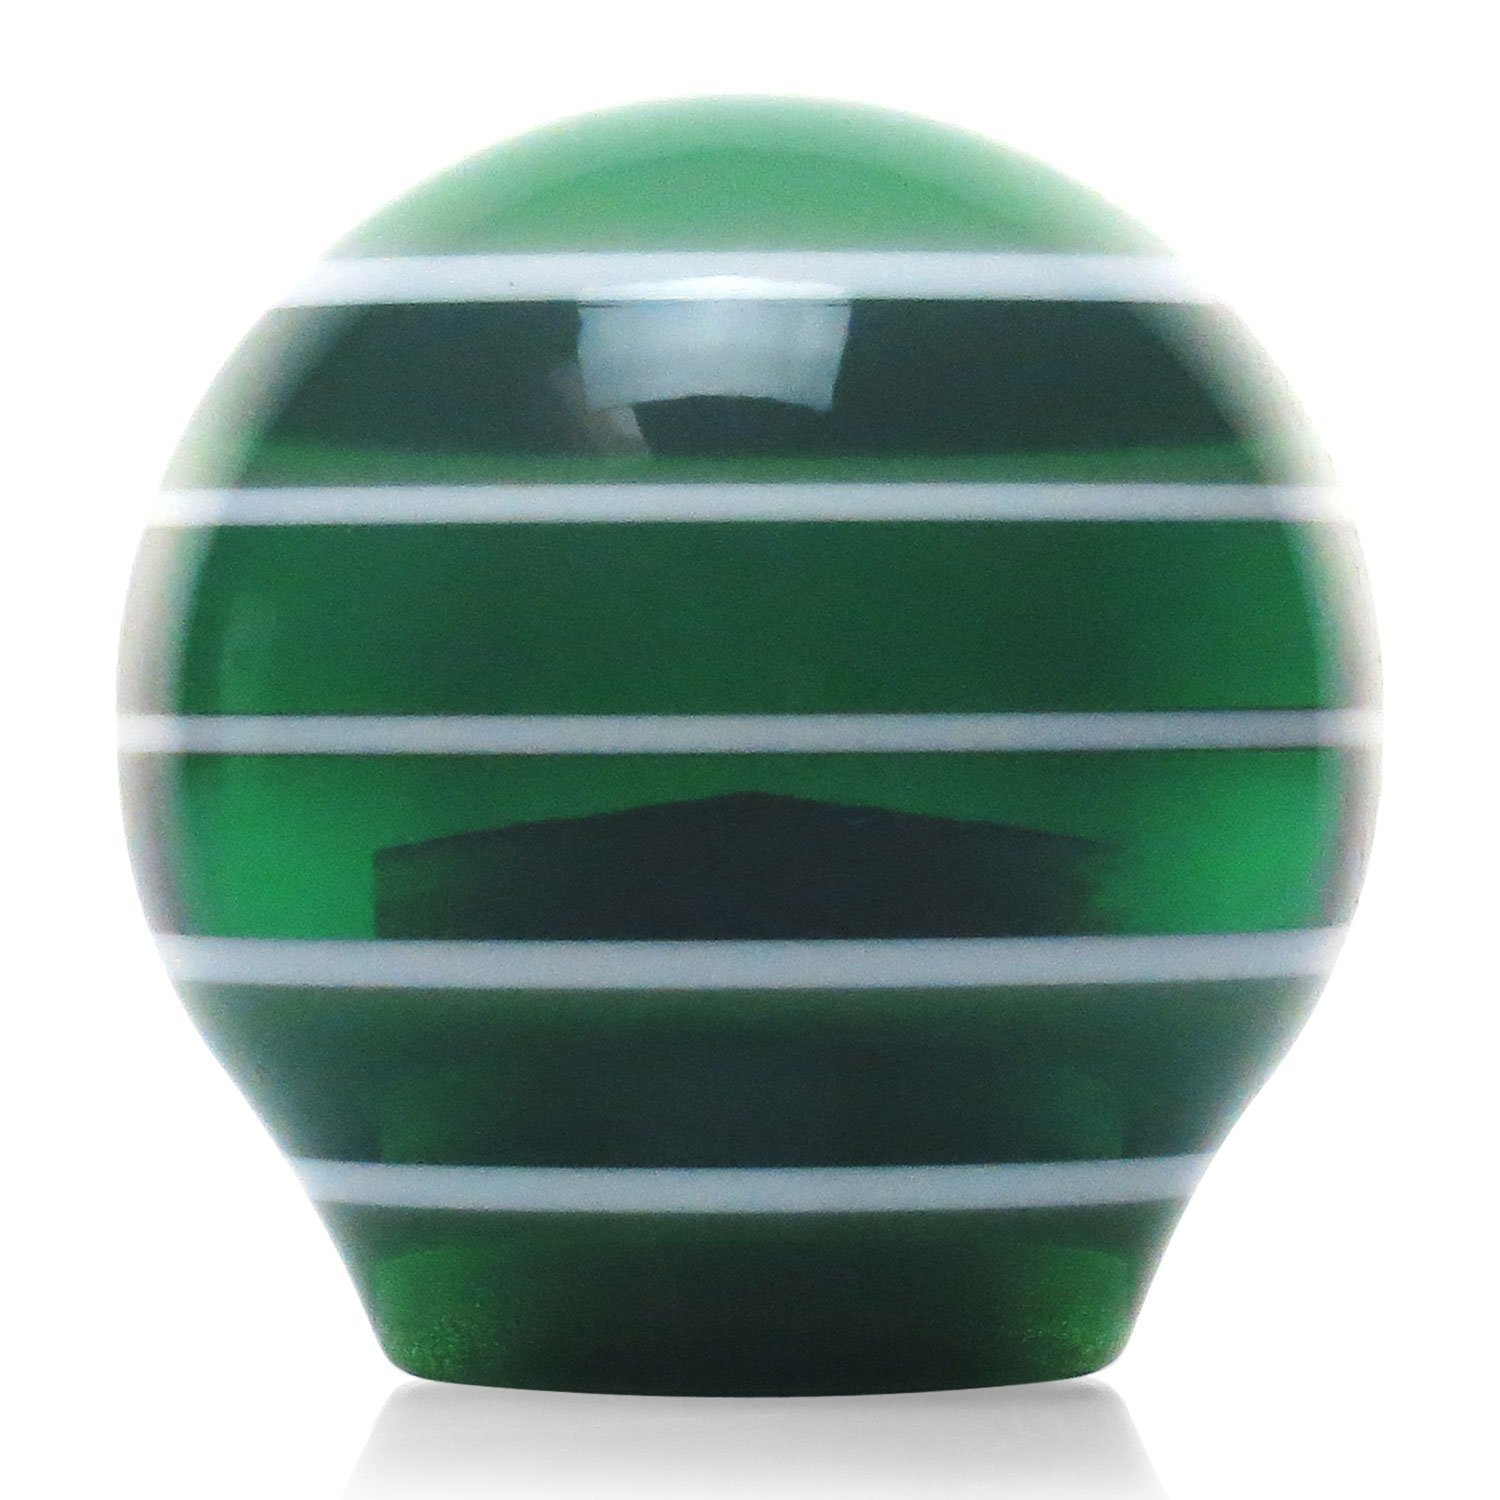 American Shifter 127559 Green Stripe Shift Knob with M16 x 1.5 Insert Pink Shift Pattern OS26n